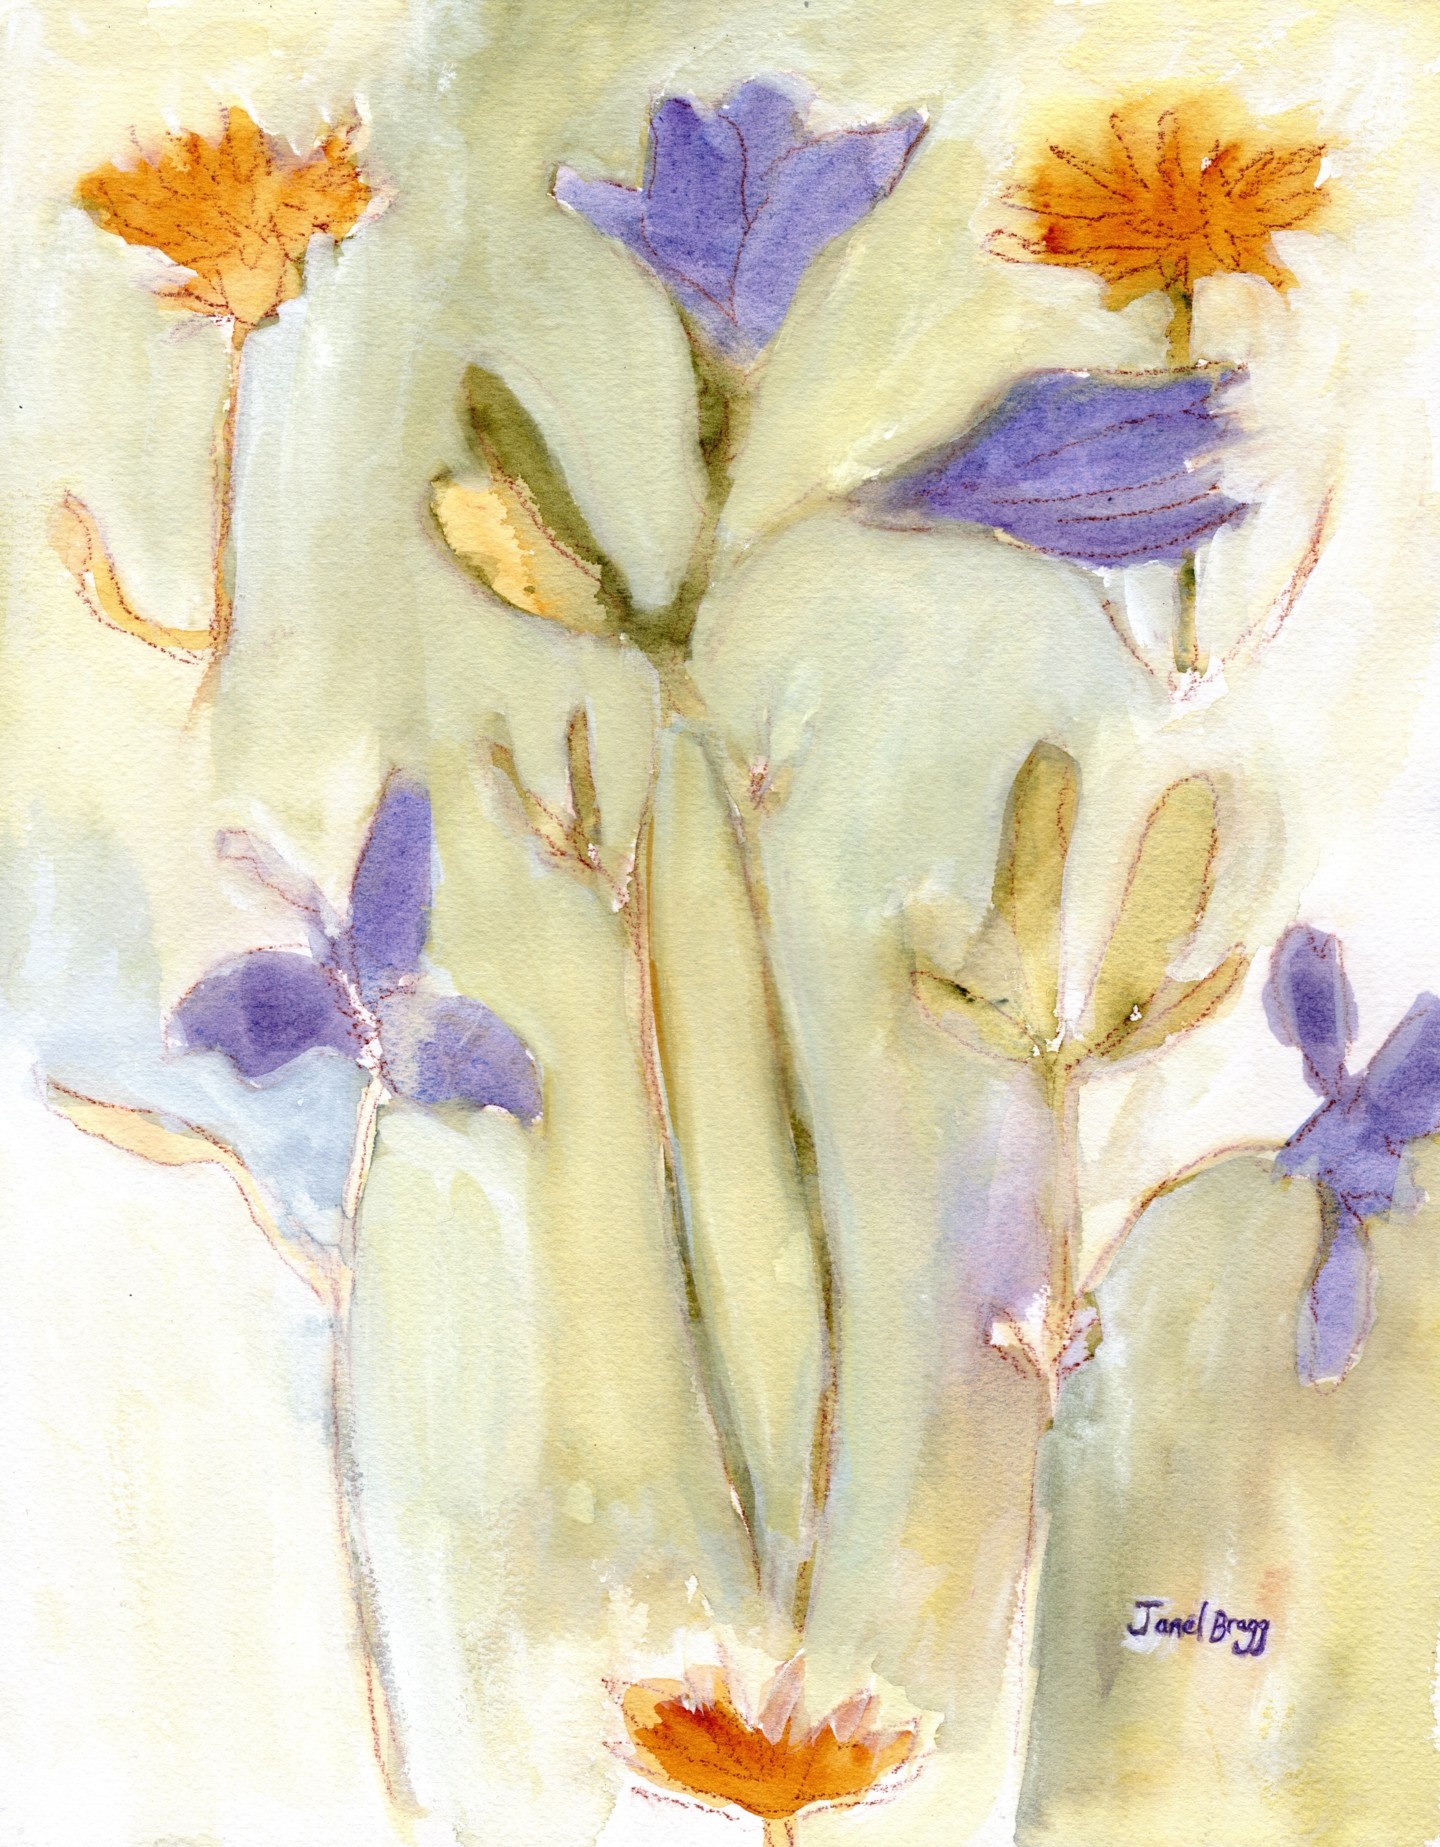 Janel Bragg - Periwinkle and Dandelion